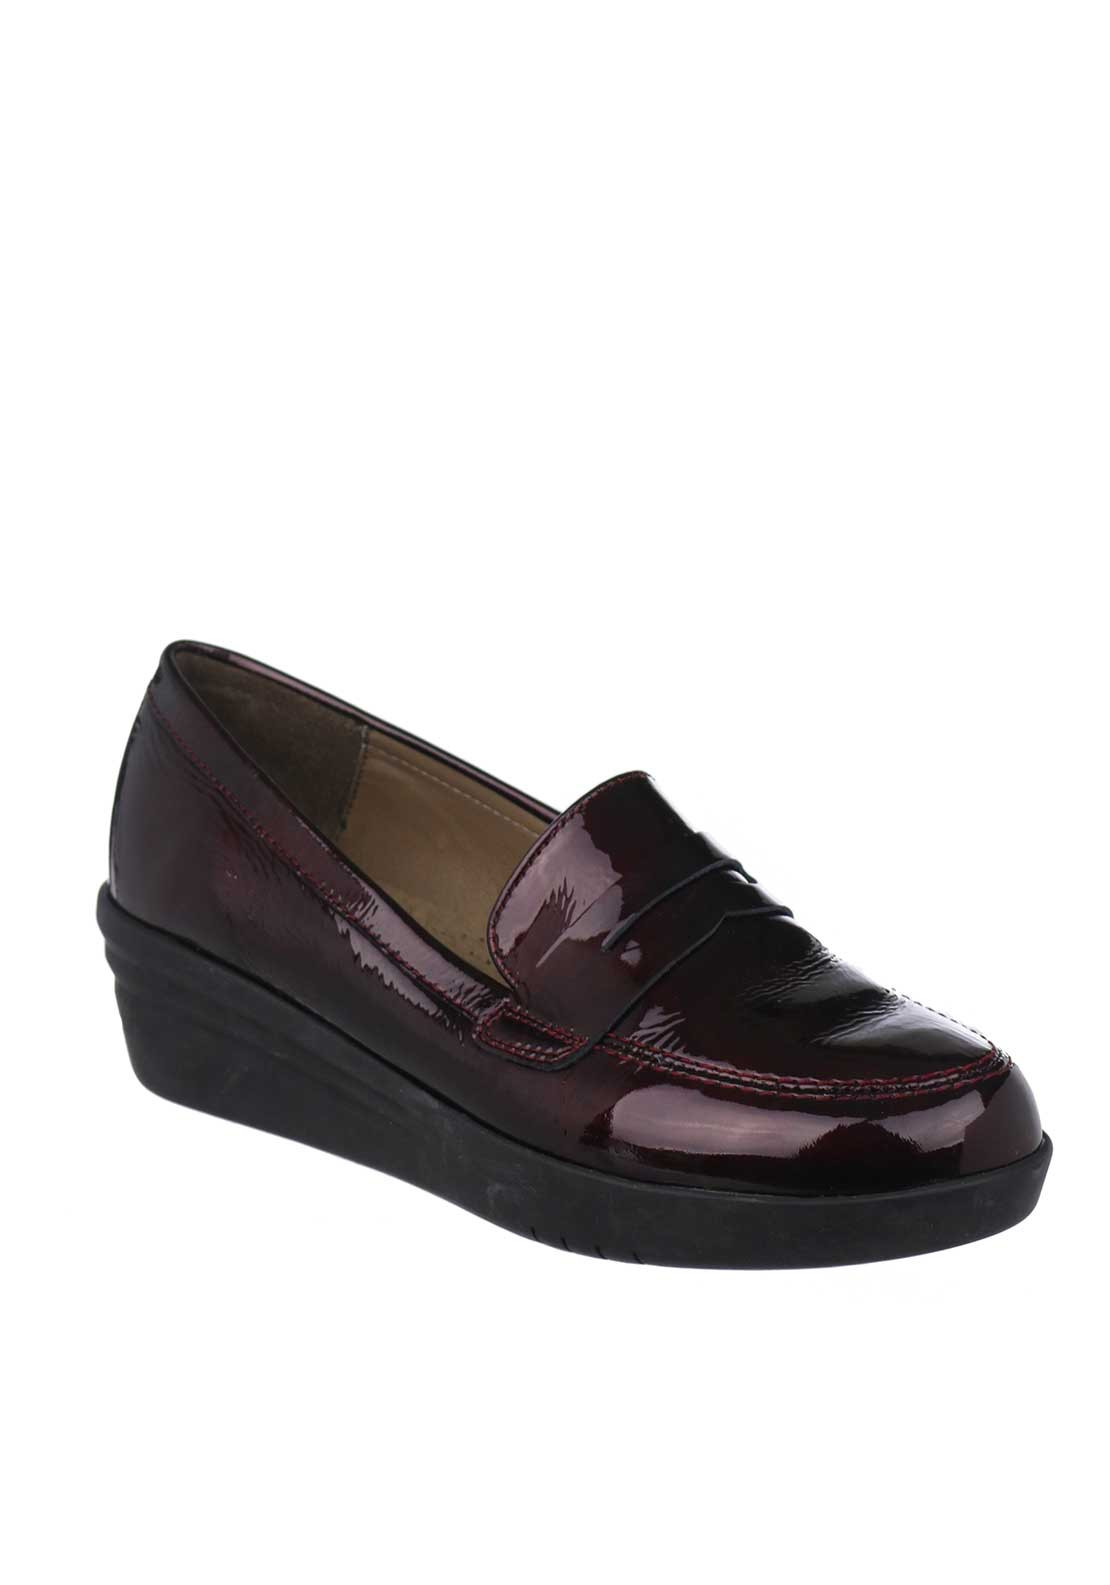 Flex & Go Giovana Patent Leather Shoes, Wine